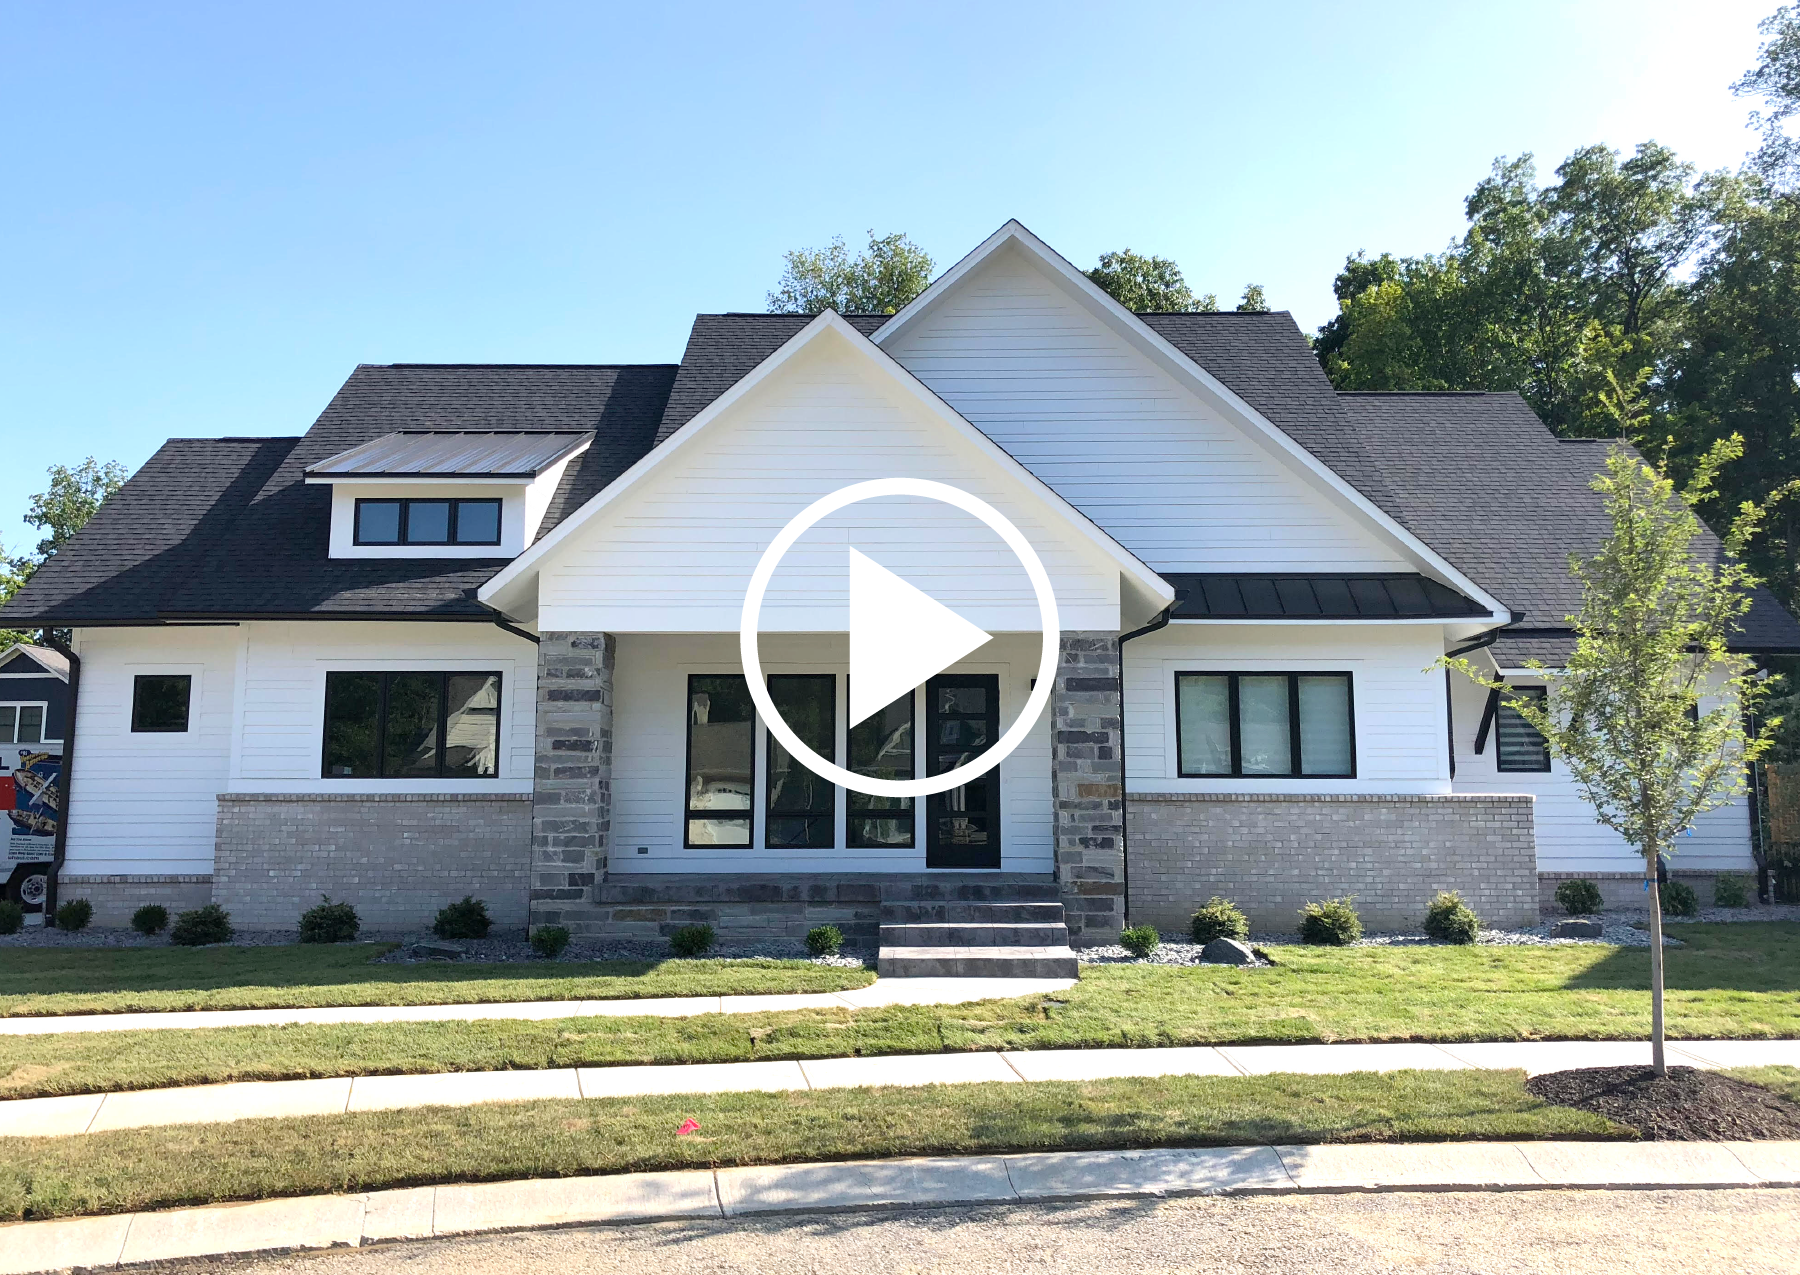 CUSTOM HOME: Modern, 4 Bedroom, Ranch with Basement RE-BUILD IN:  Chatham Hills ,  Maple Ridge  or  Holliday Farms